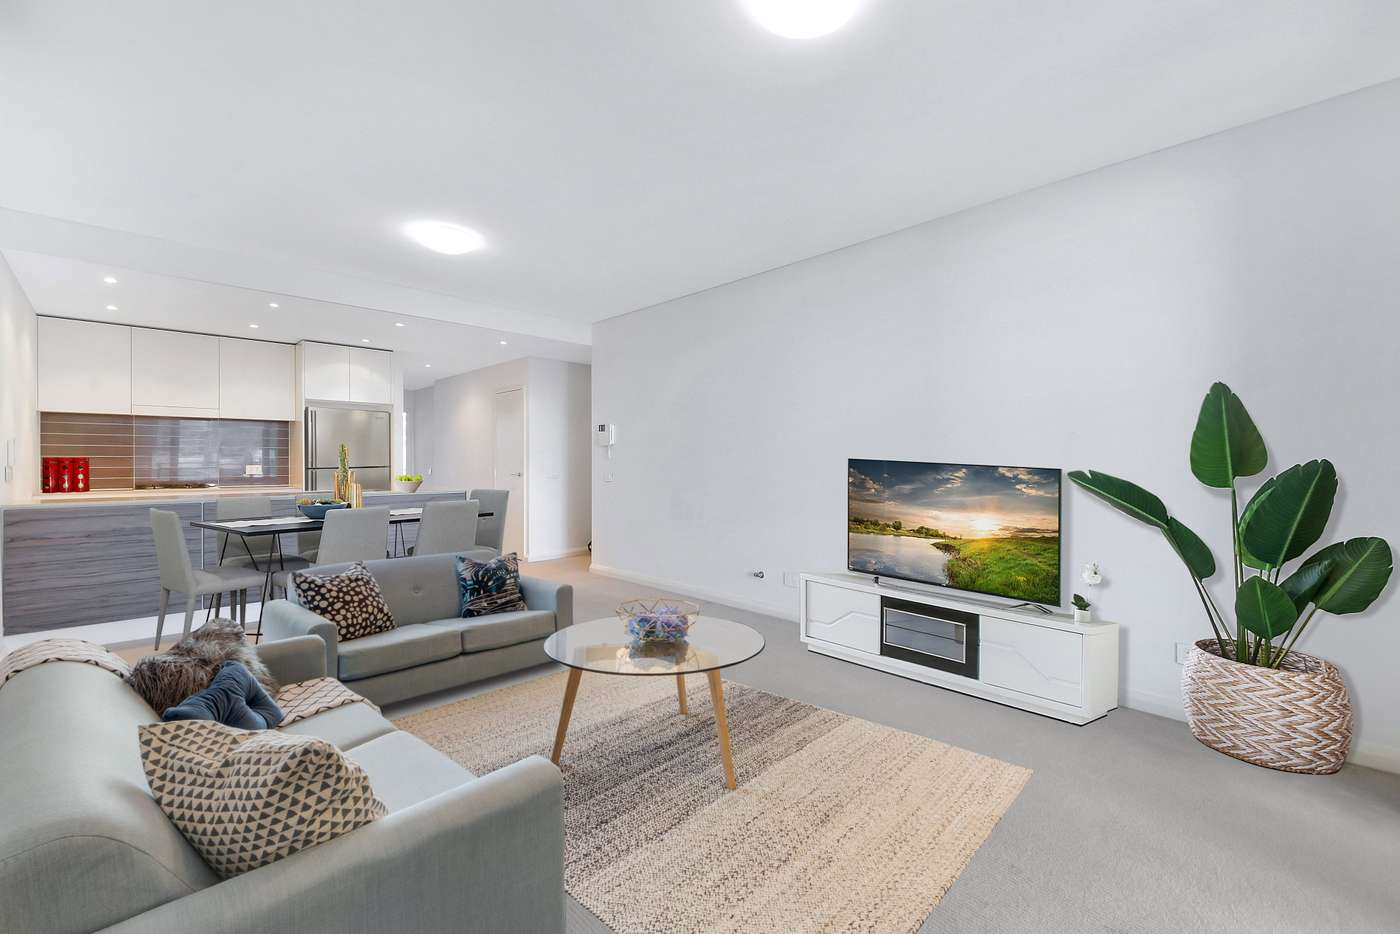 Main view of Homely apartment listing, 418/16 Baywater Drive, Wentworth Point NSW 2127